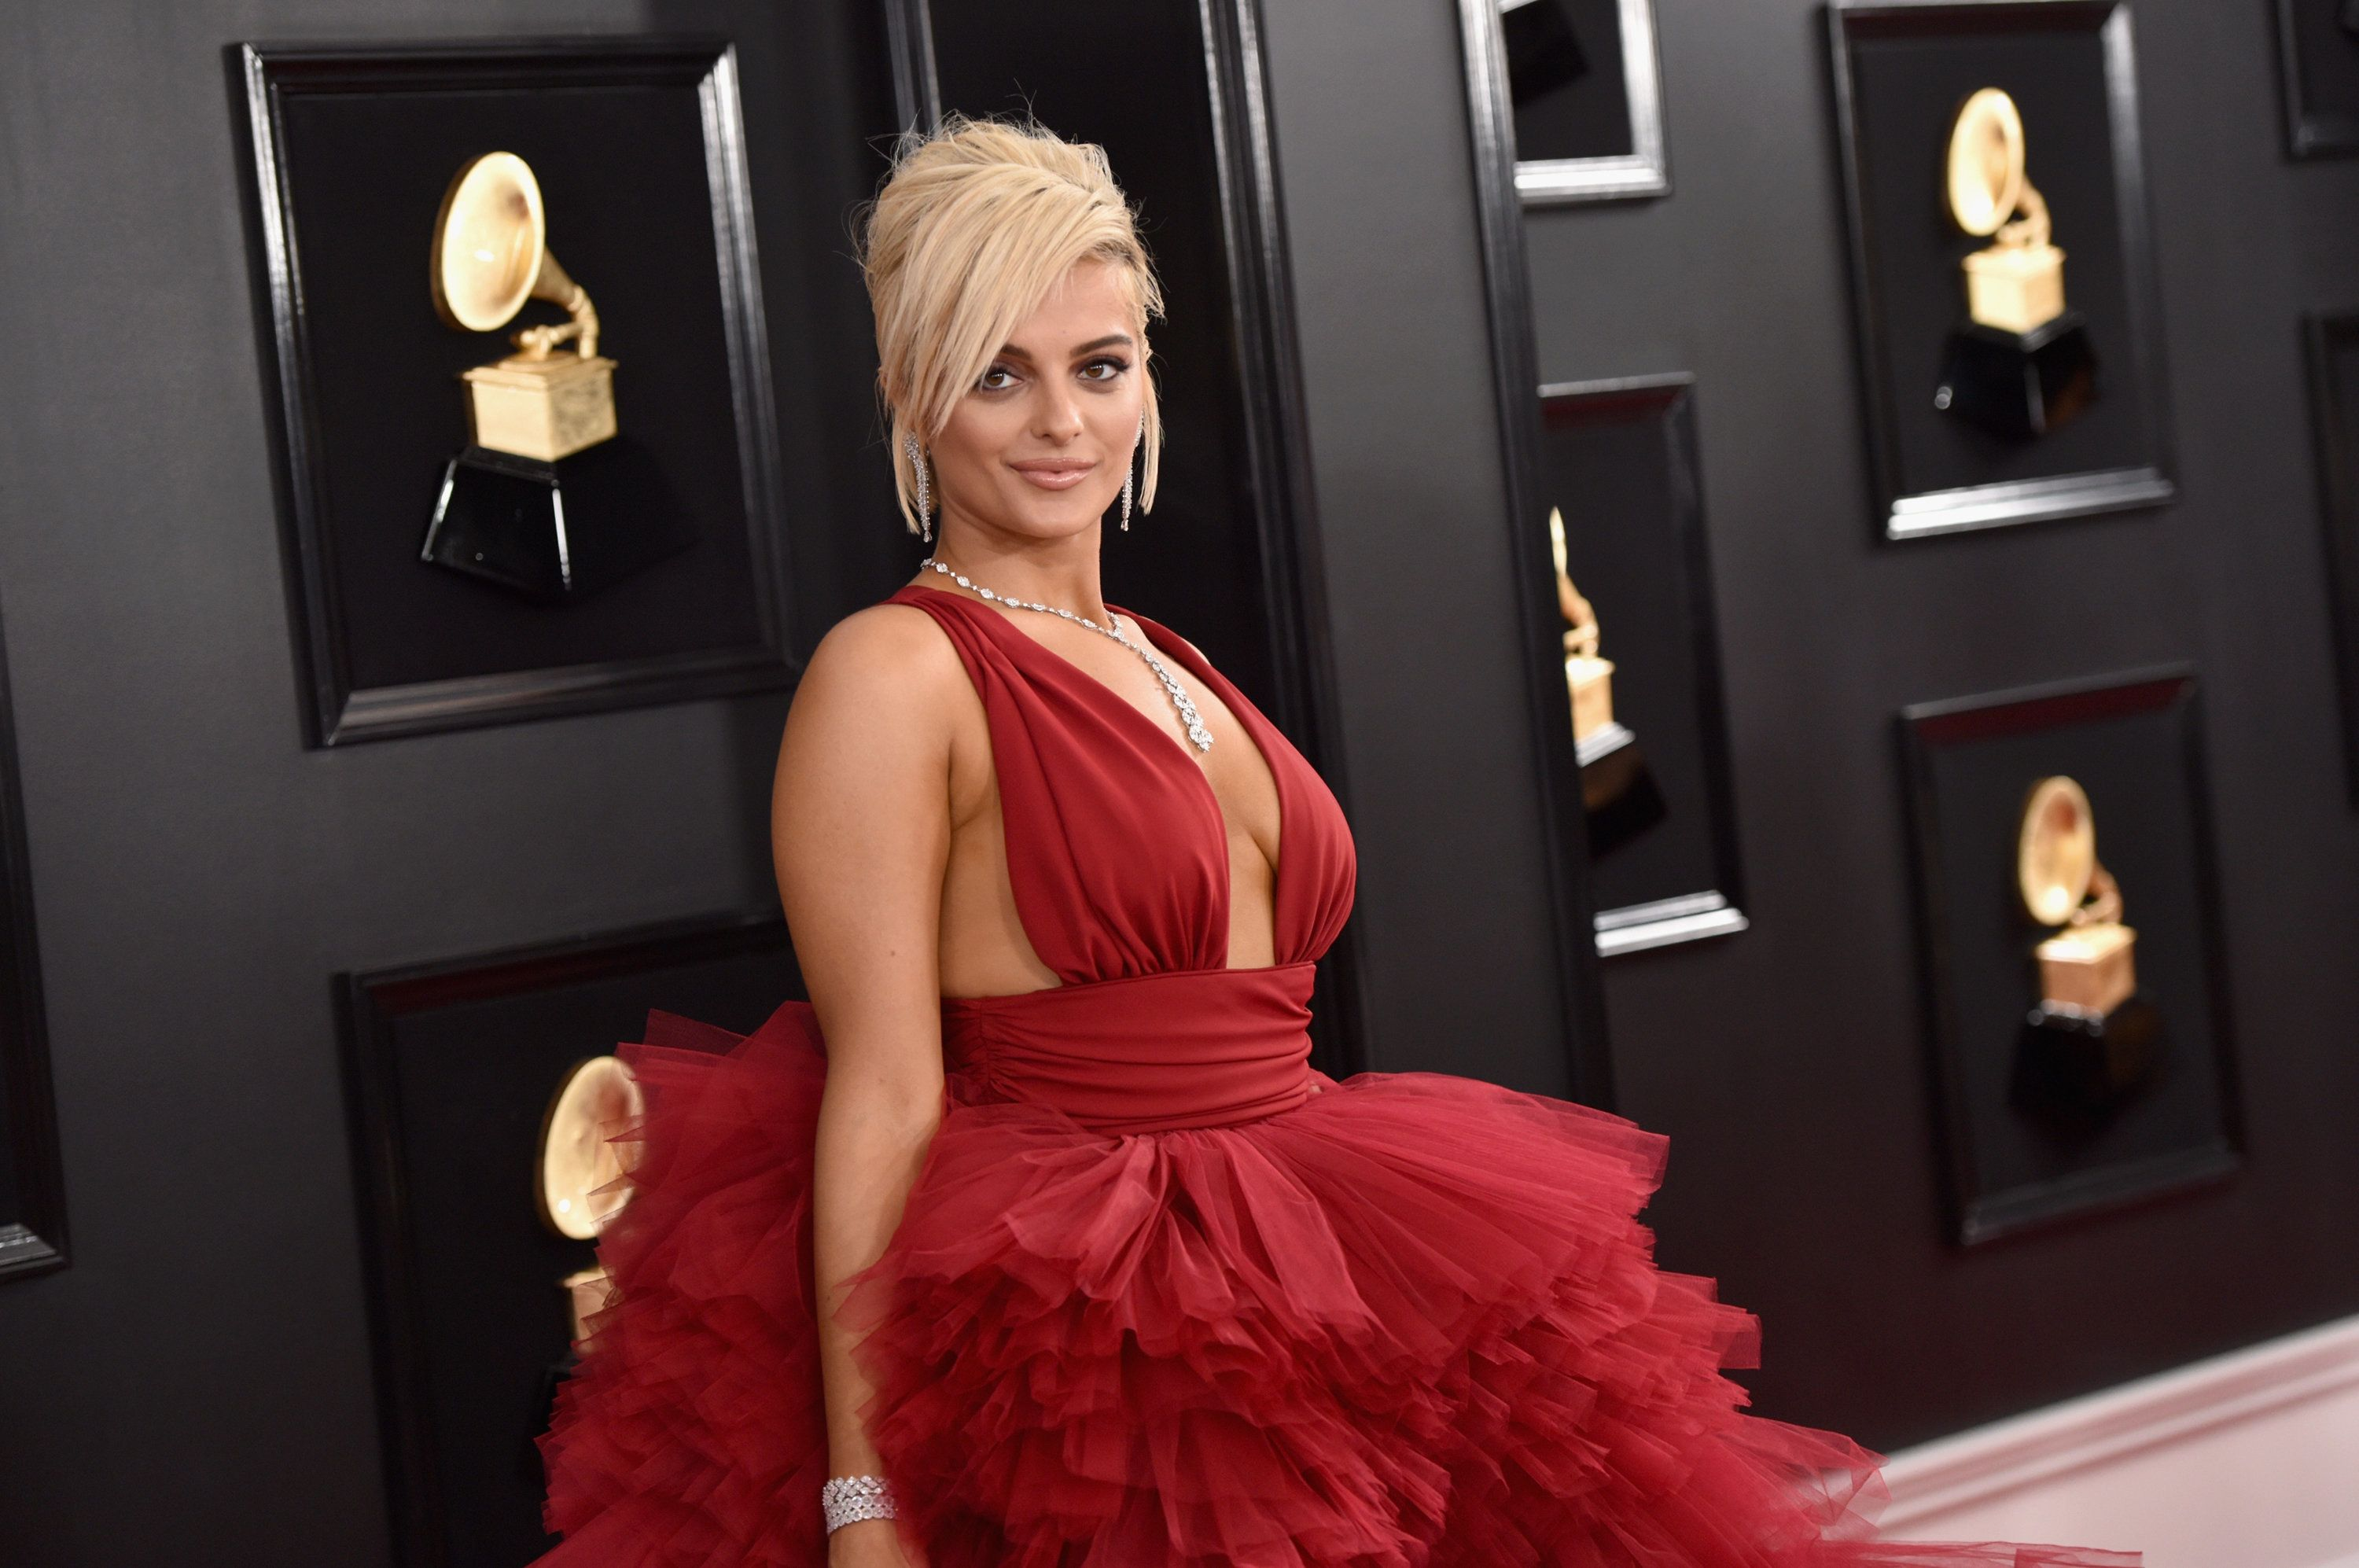 LOS ANGELES, CA - FEBRUARY 10:  Bebe Rexha attends the 61st Annual GRAMMY Awards at Staples Center on February 10, 2019 in Los Angeles, California.  (Photo by John Shearer/Getty Images for The Recording Academy)